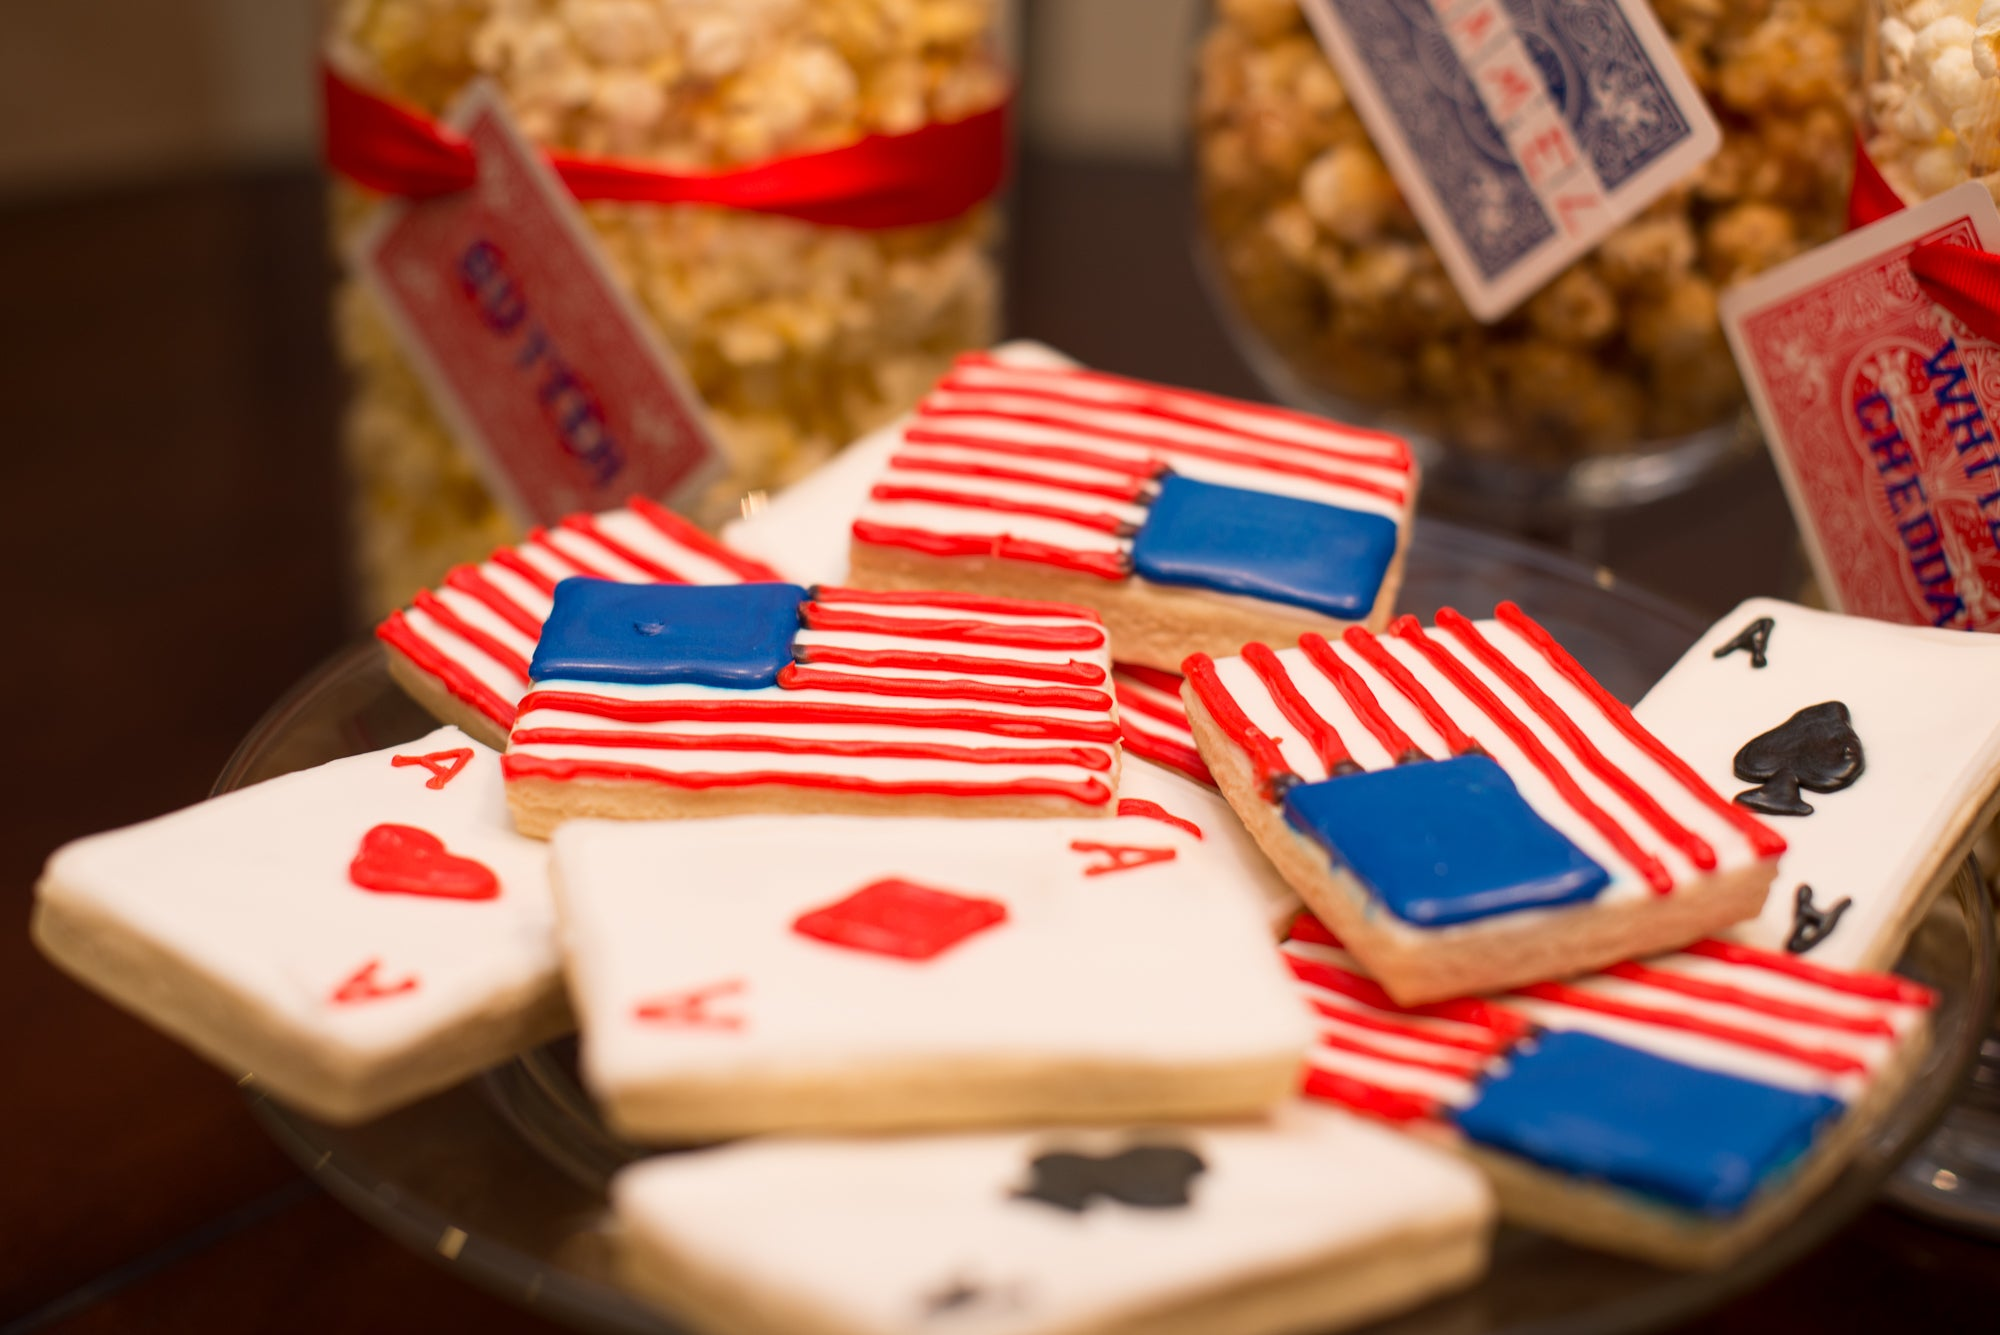 House of Cards Watch Party-5